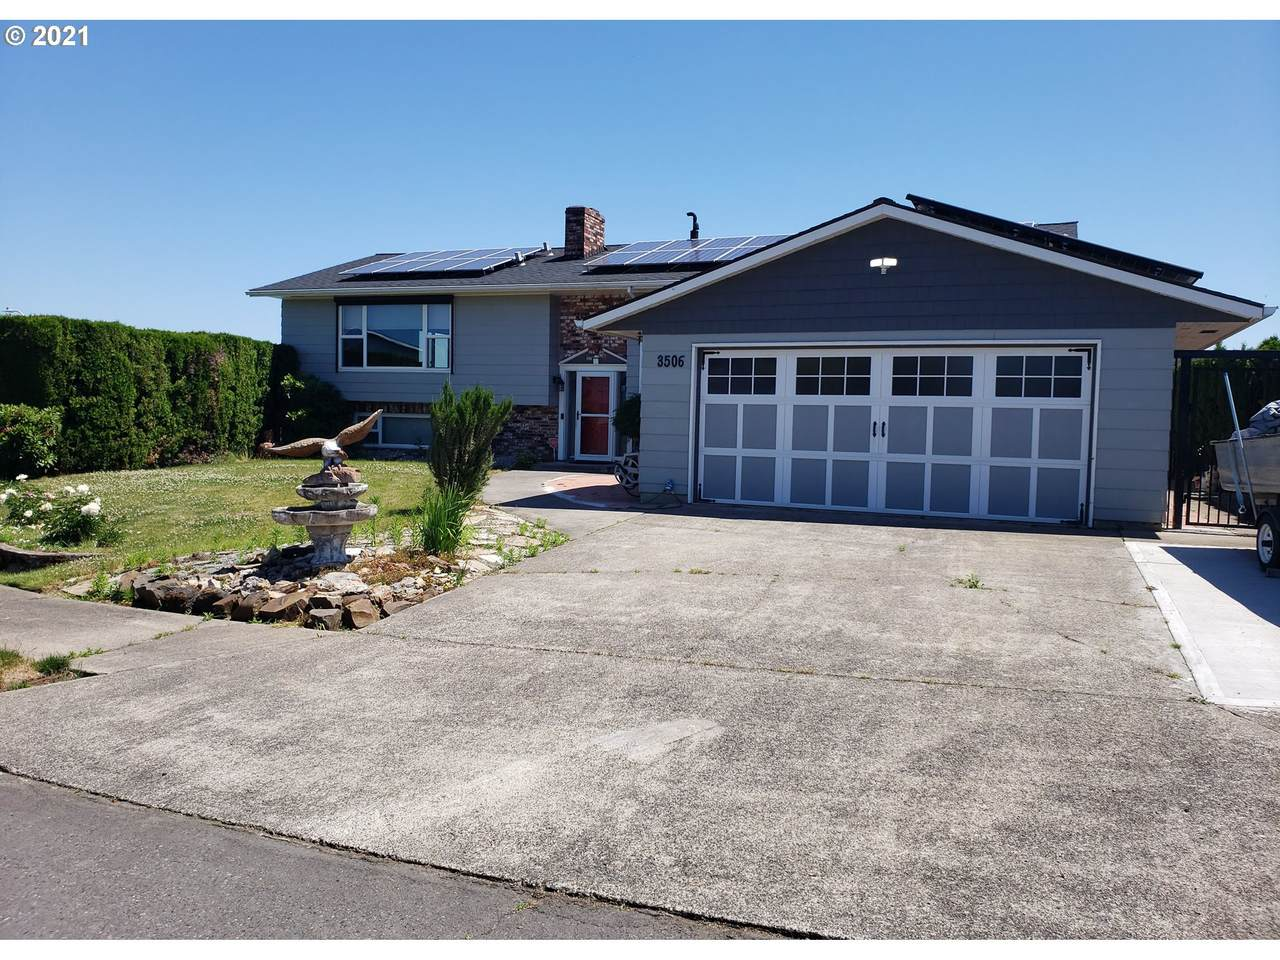 3506 145TH Ave - Photo 1